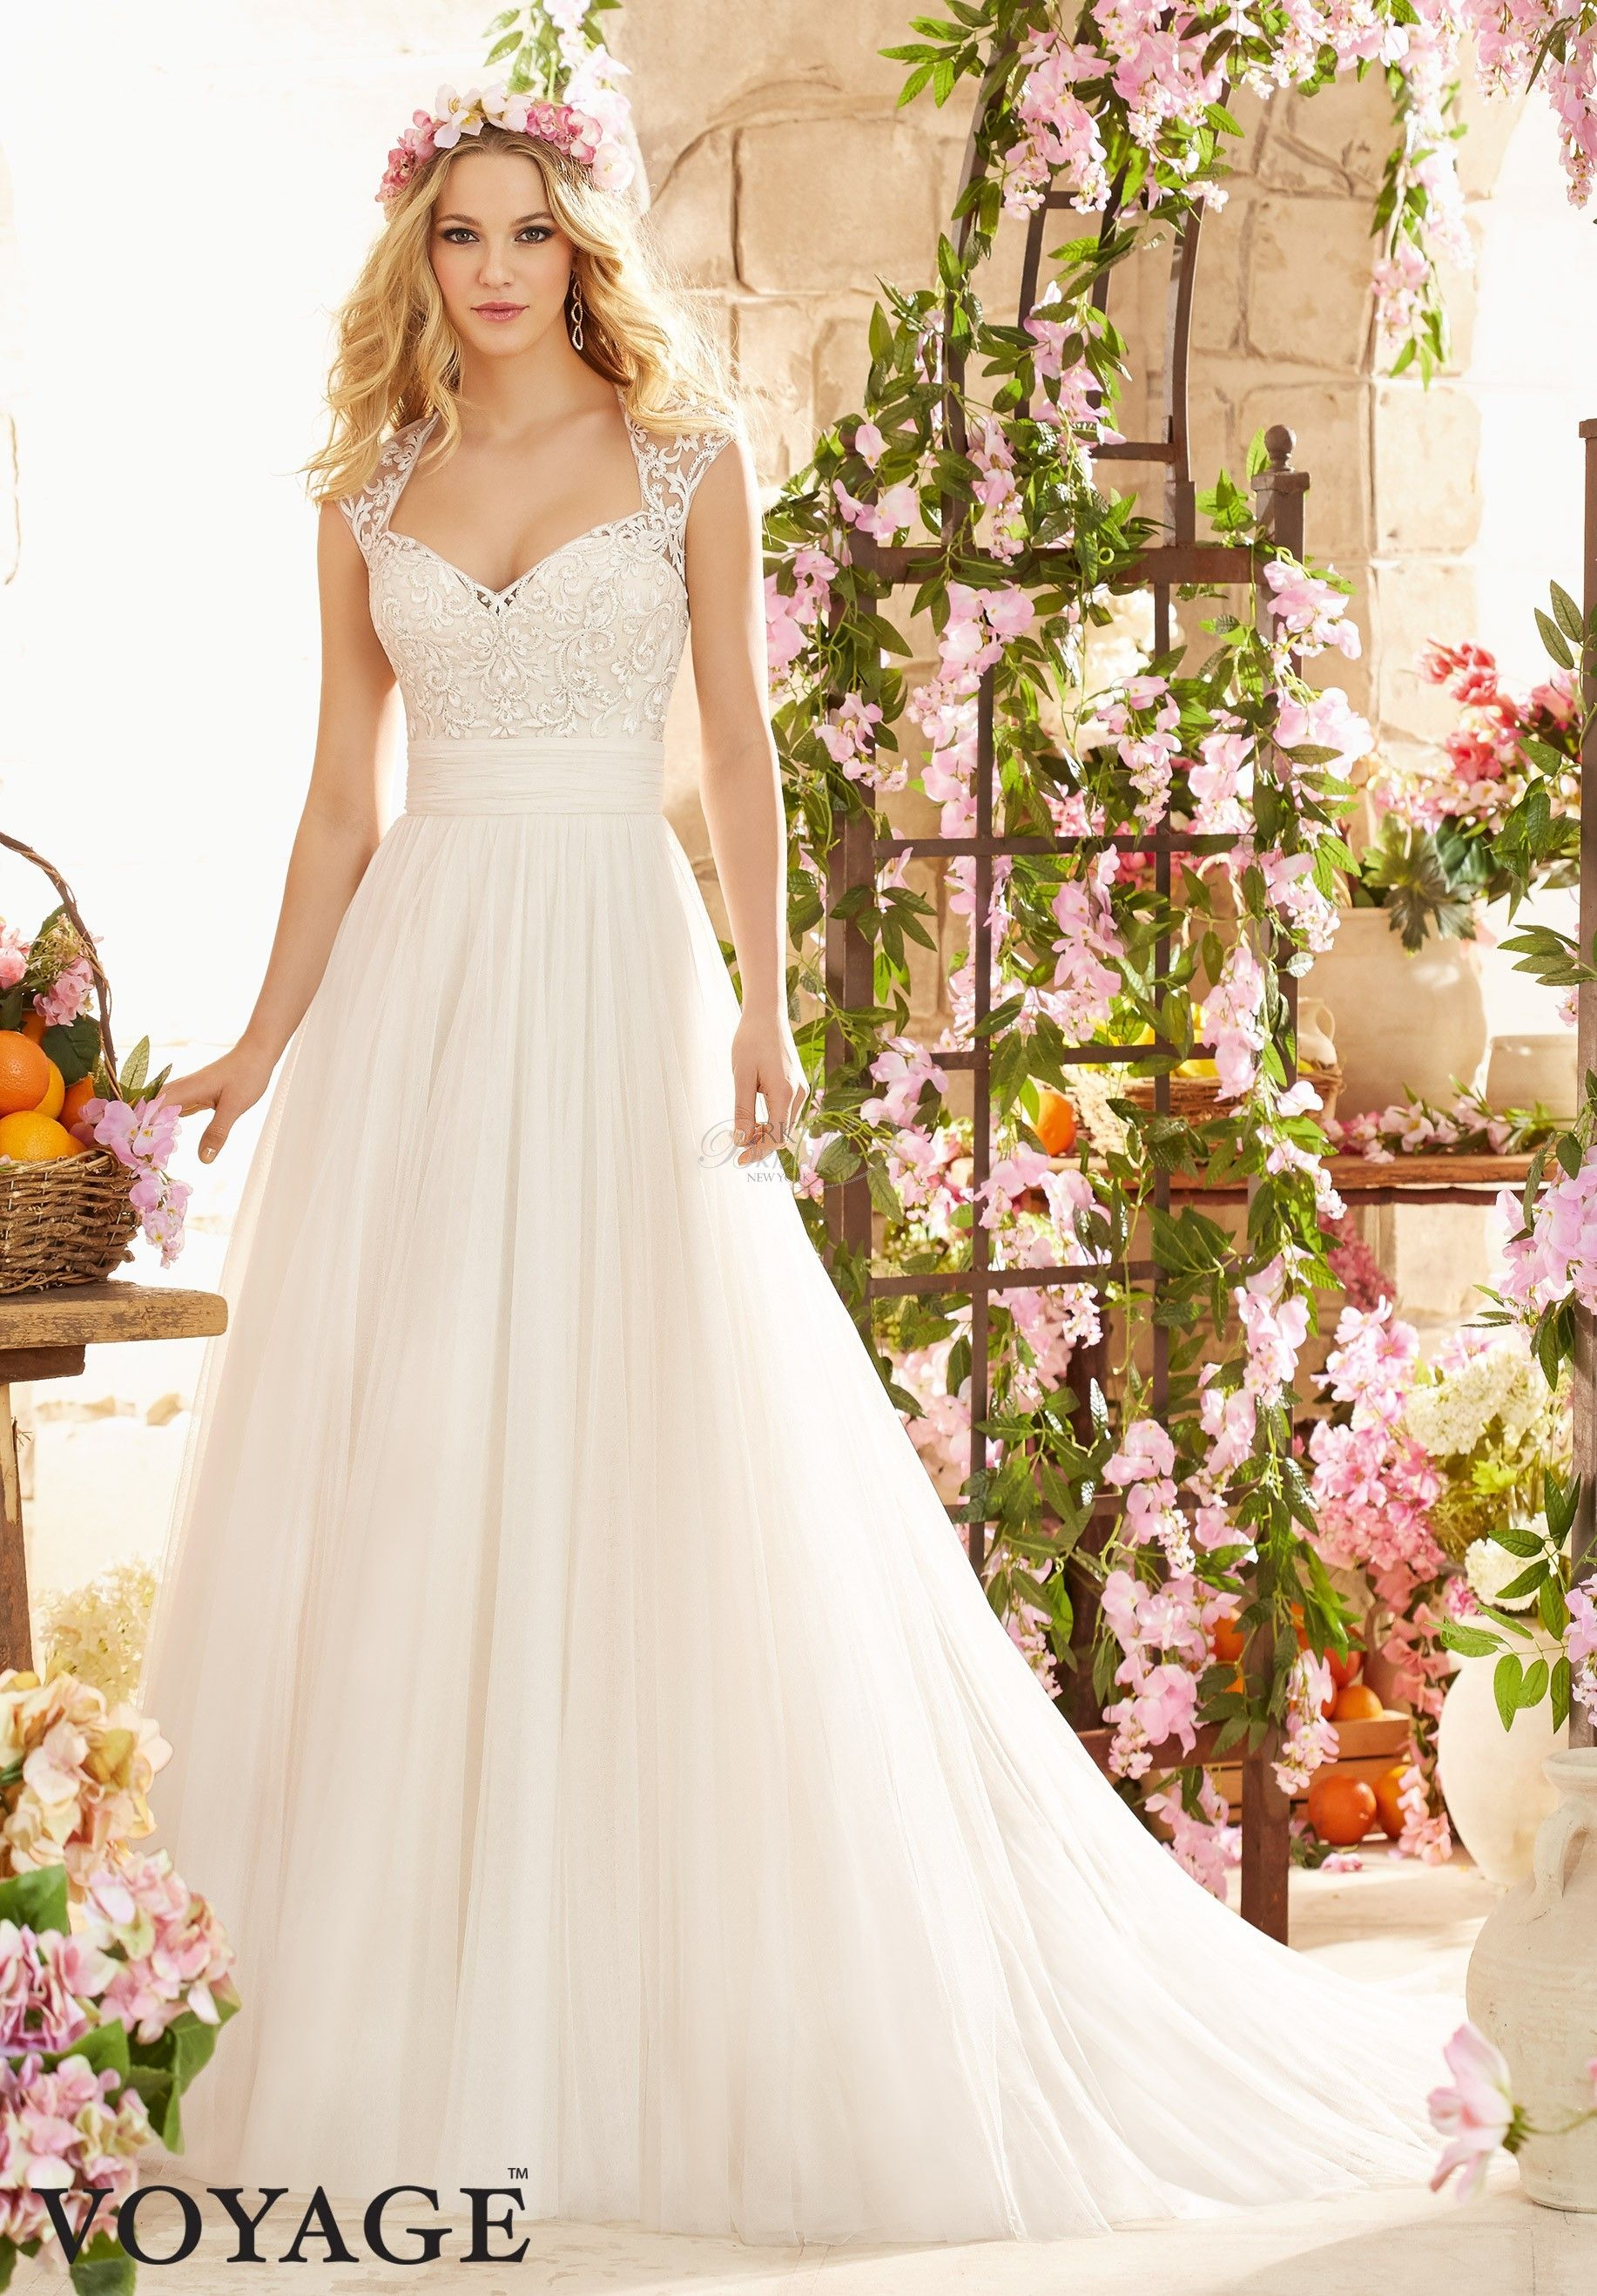 Best wedding dresses for big busts  RK Bridal  Voyage by Mori Lee Bridal Fall   Style